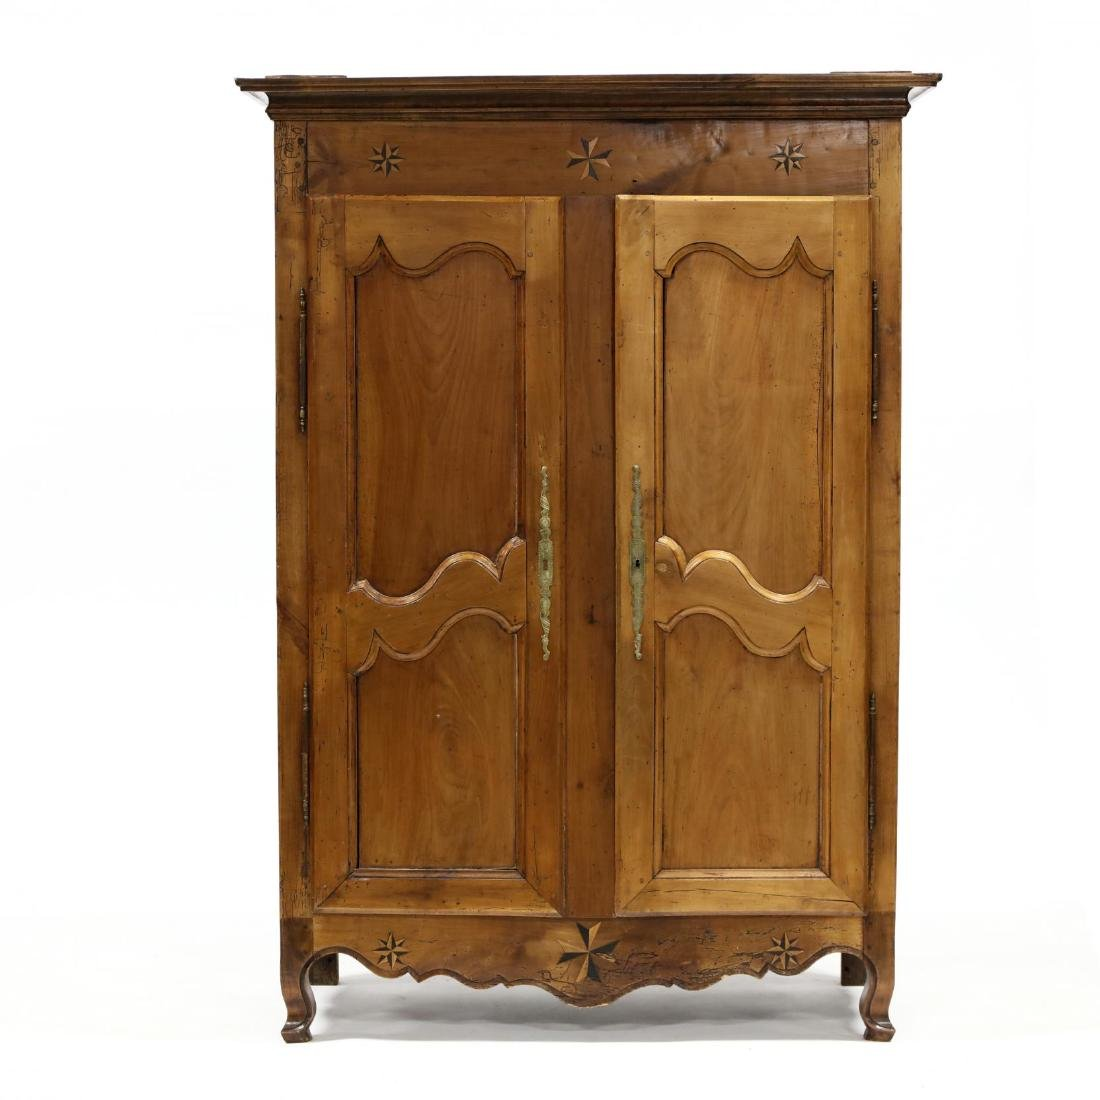 Antique French Provincial Inlaid Cherry Armoire